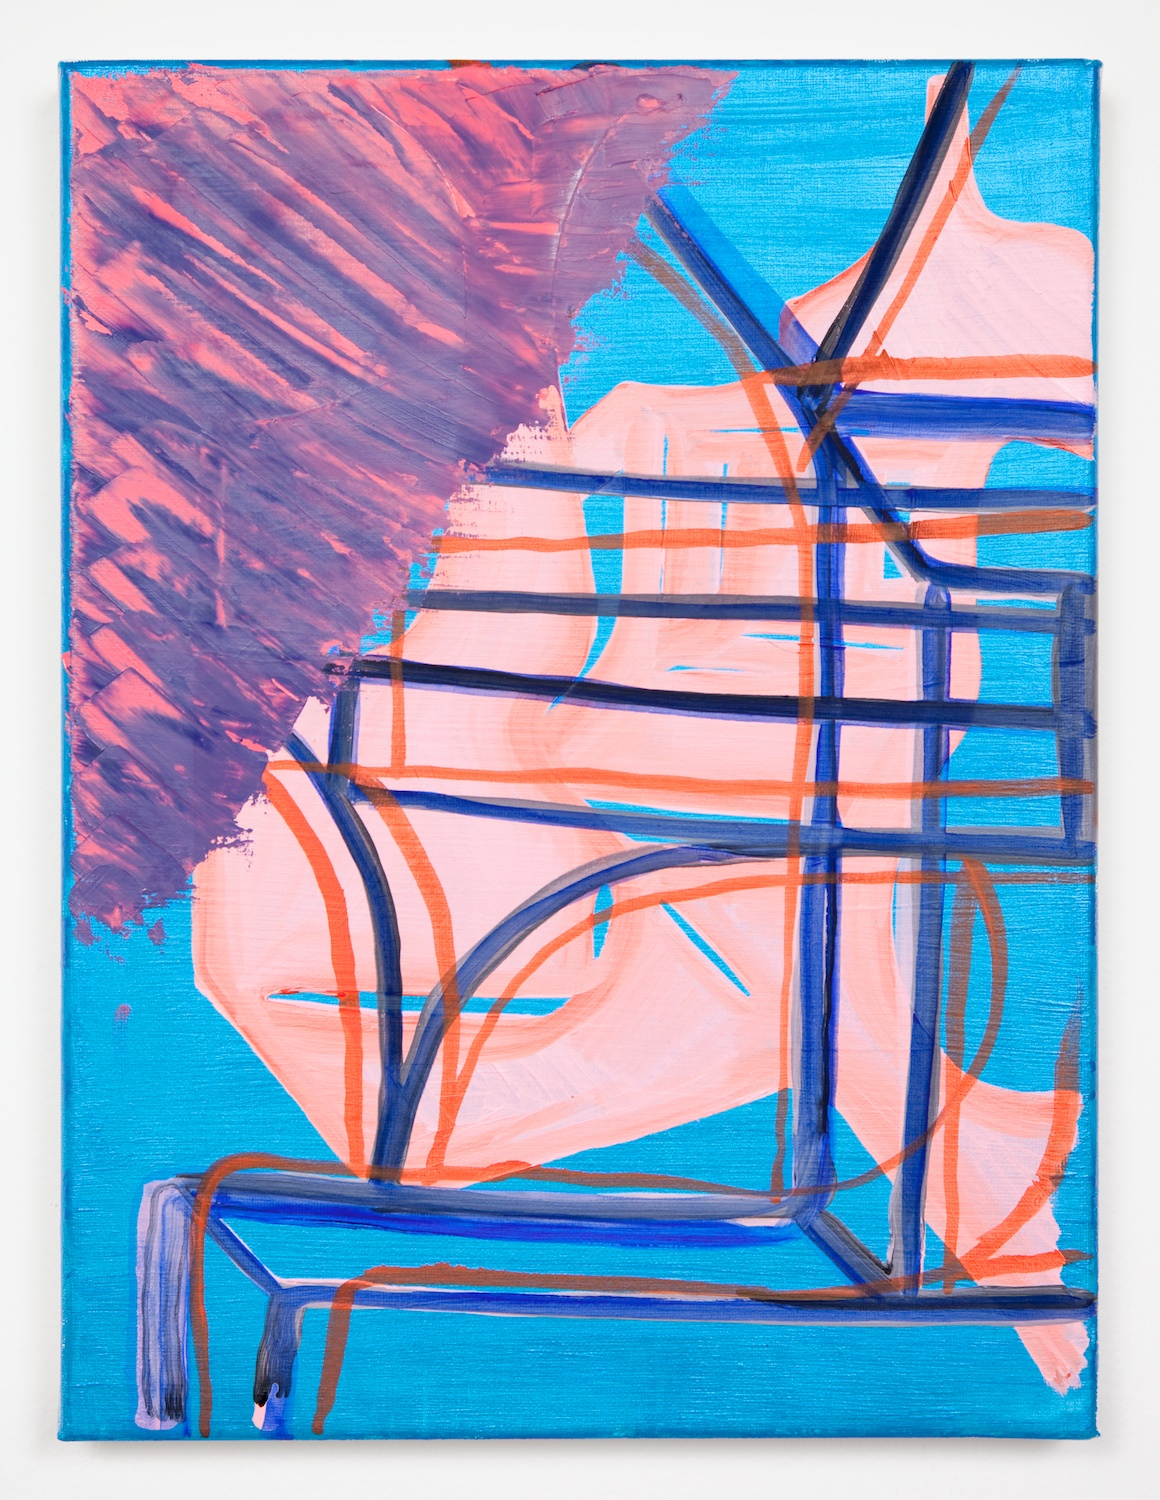 Joanne Greenbaum  Untitled  2011 Oil, acrylic and mixed media on linen 16h x 12w in JG032